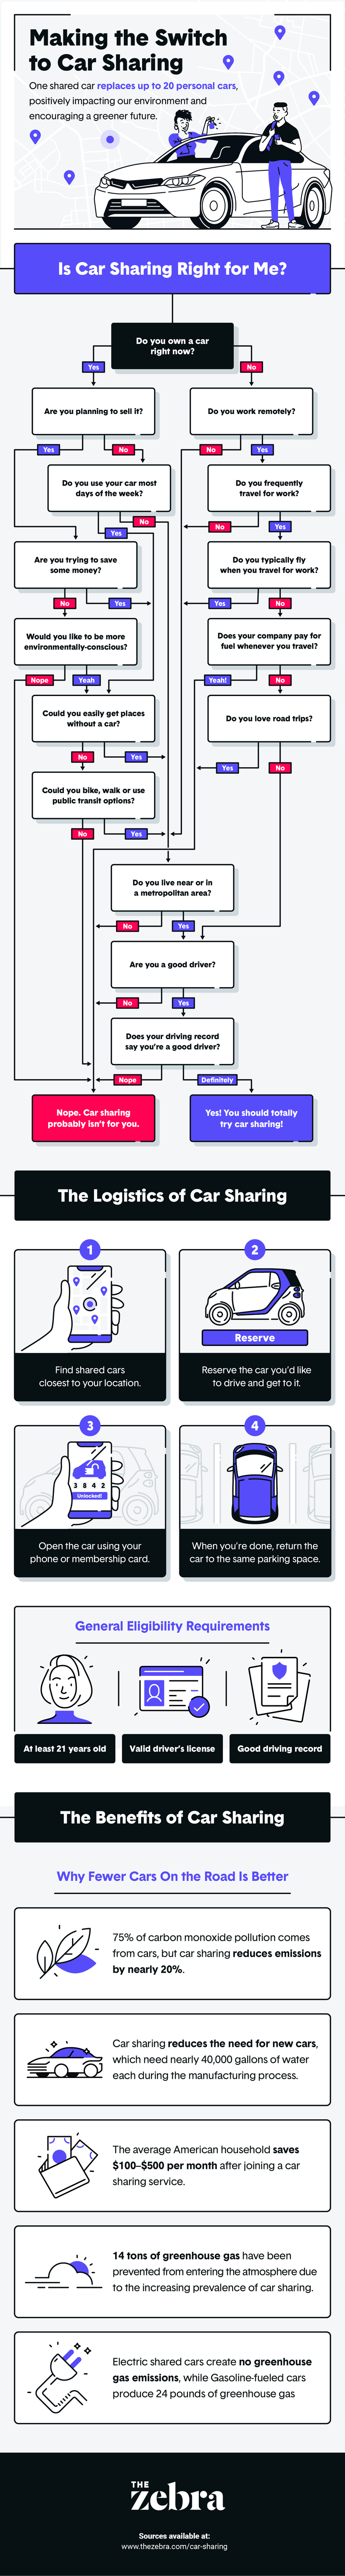 car_sharing_infographic_v3